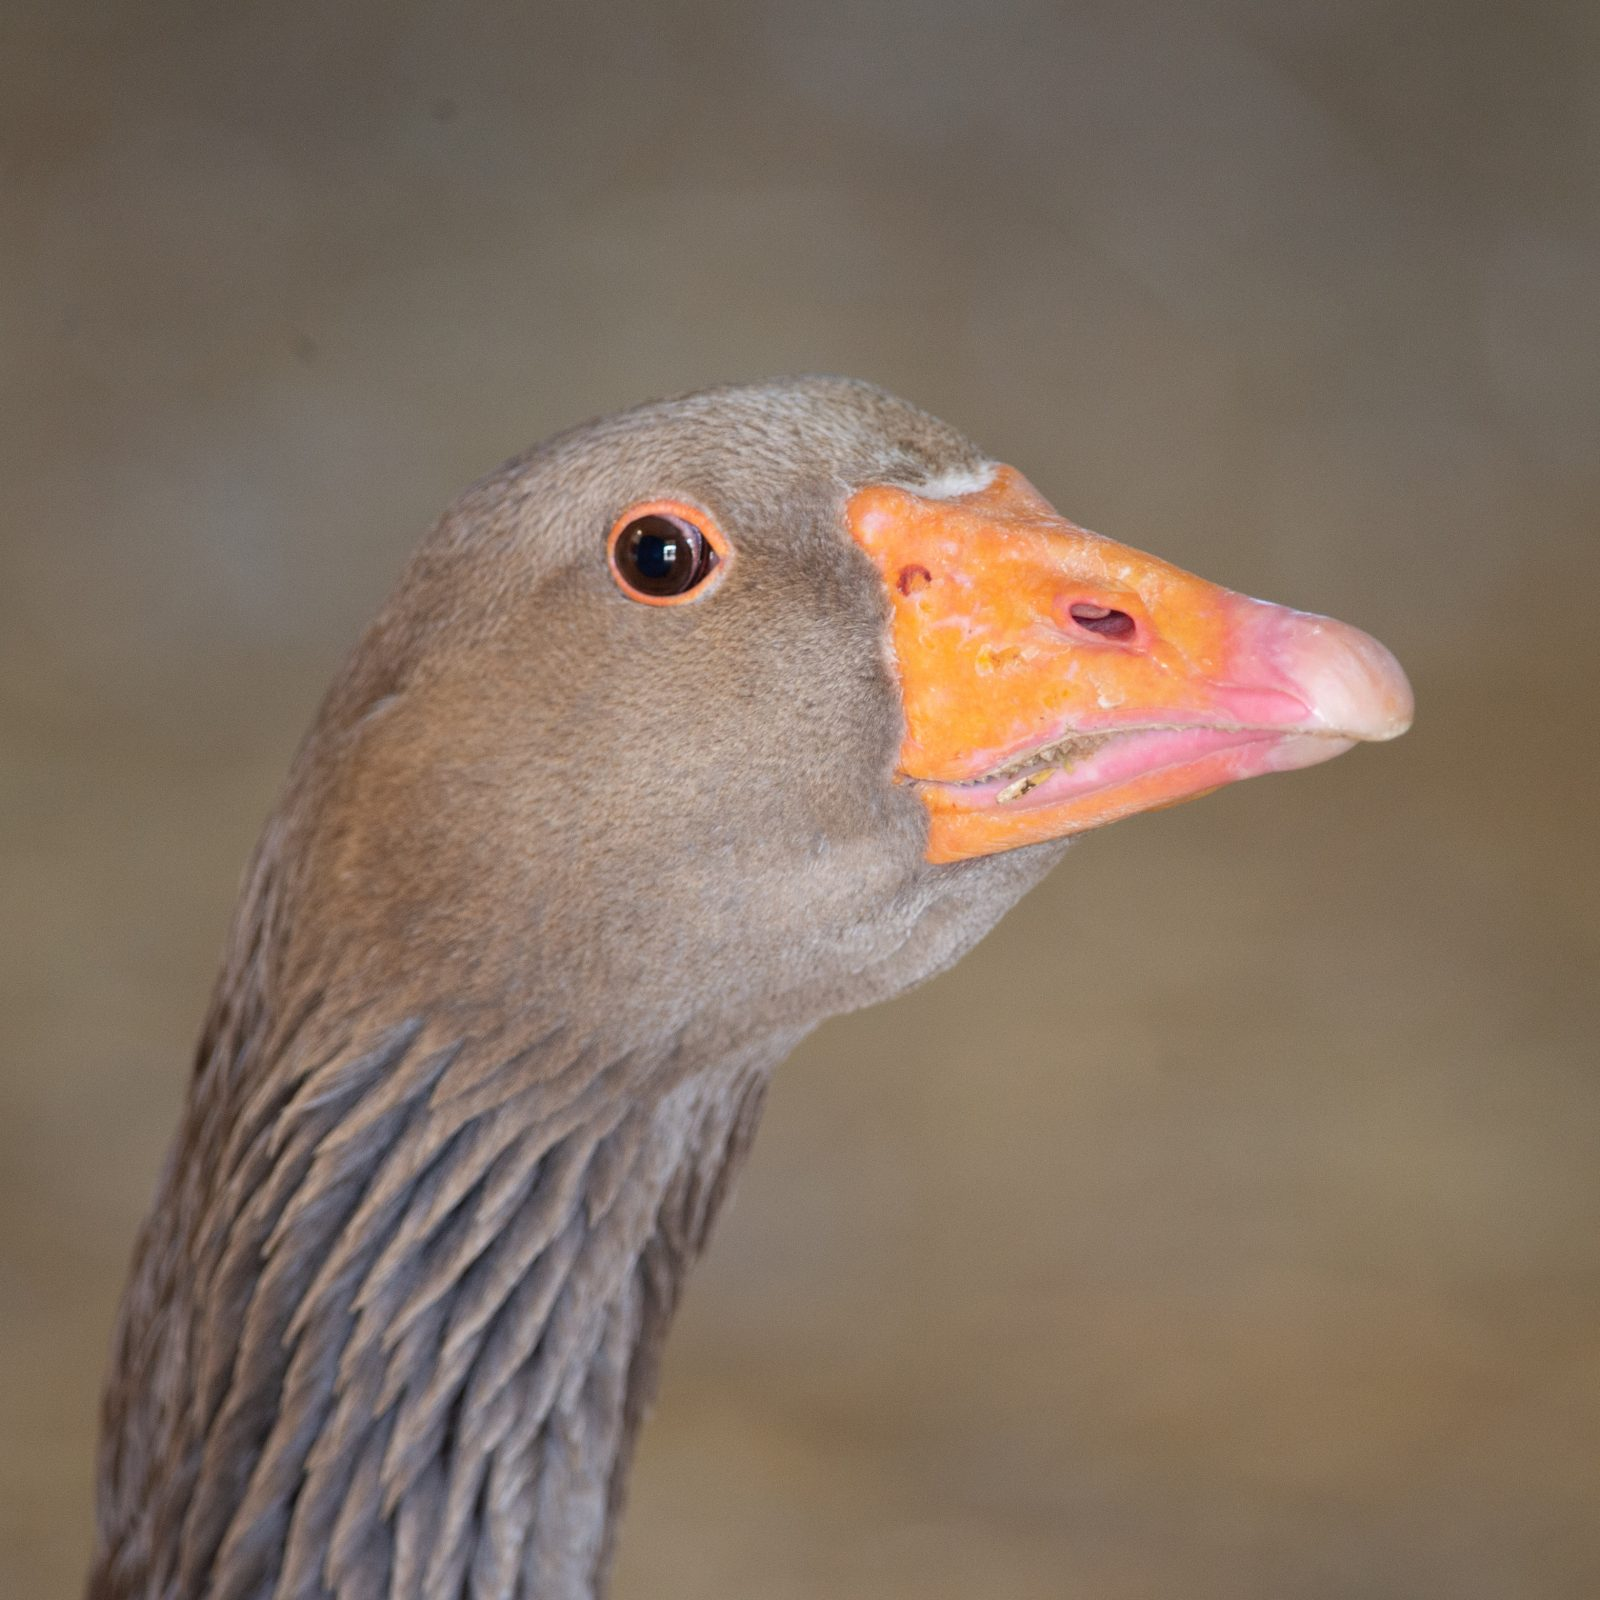 Willie Goose at Farm Sanctuary